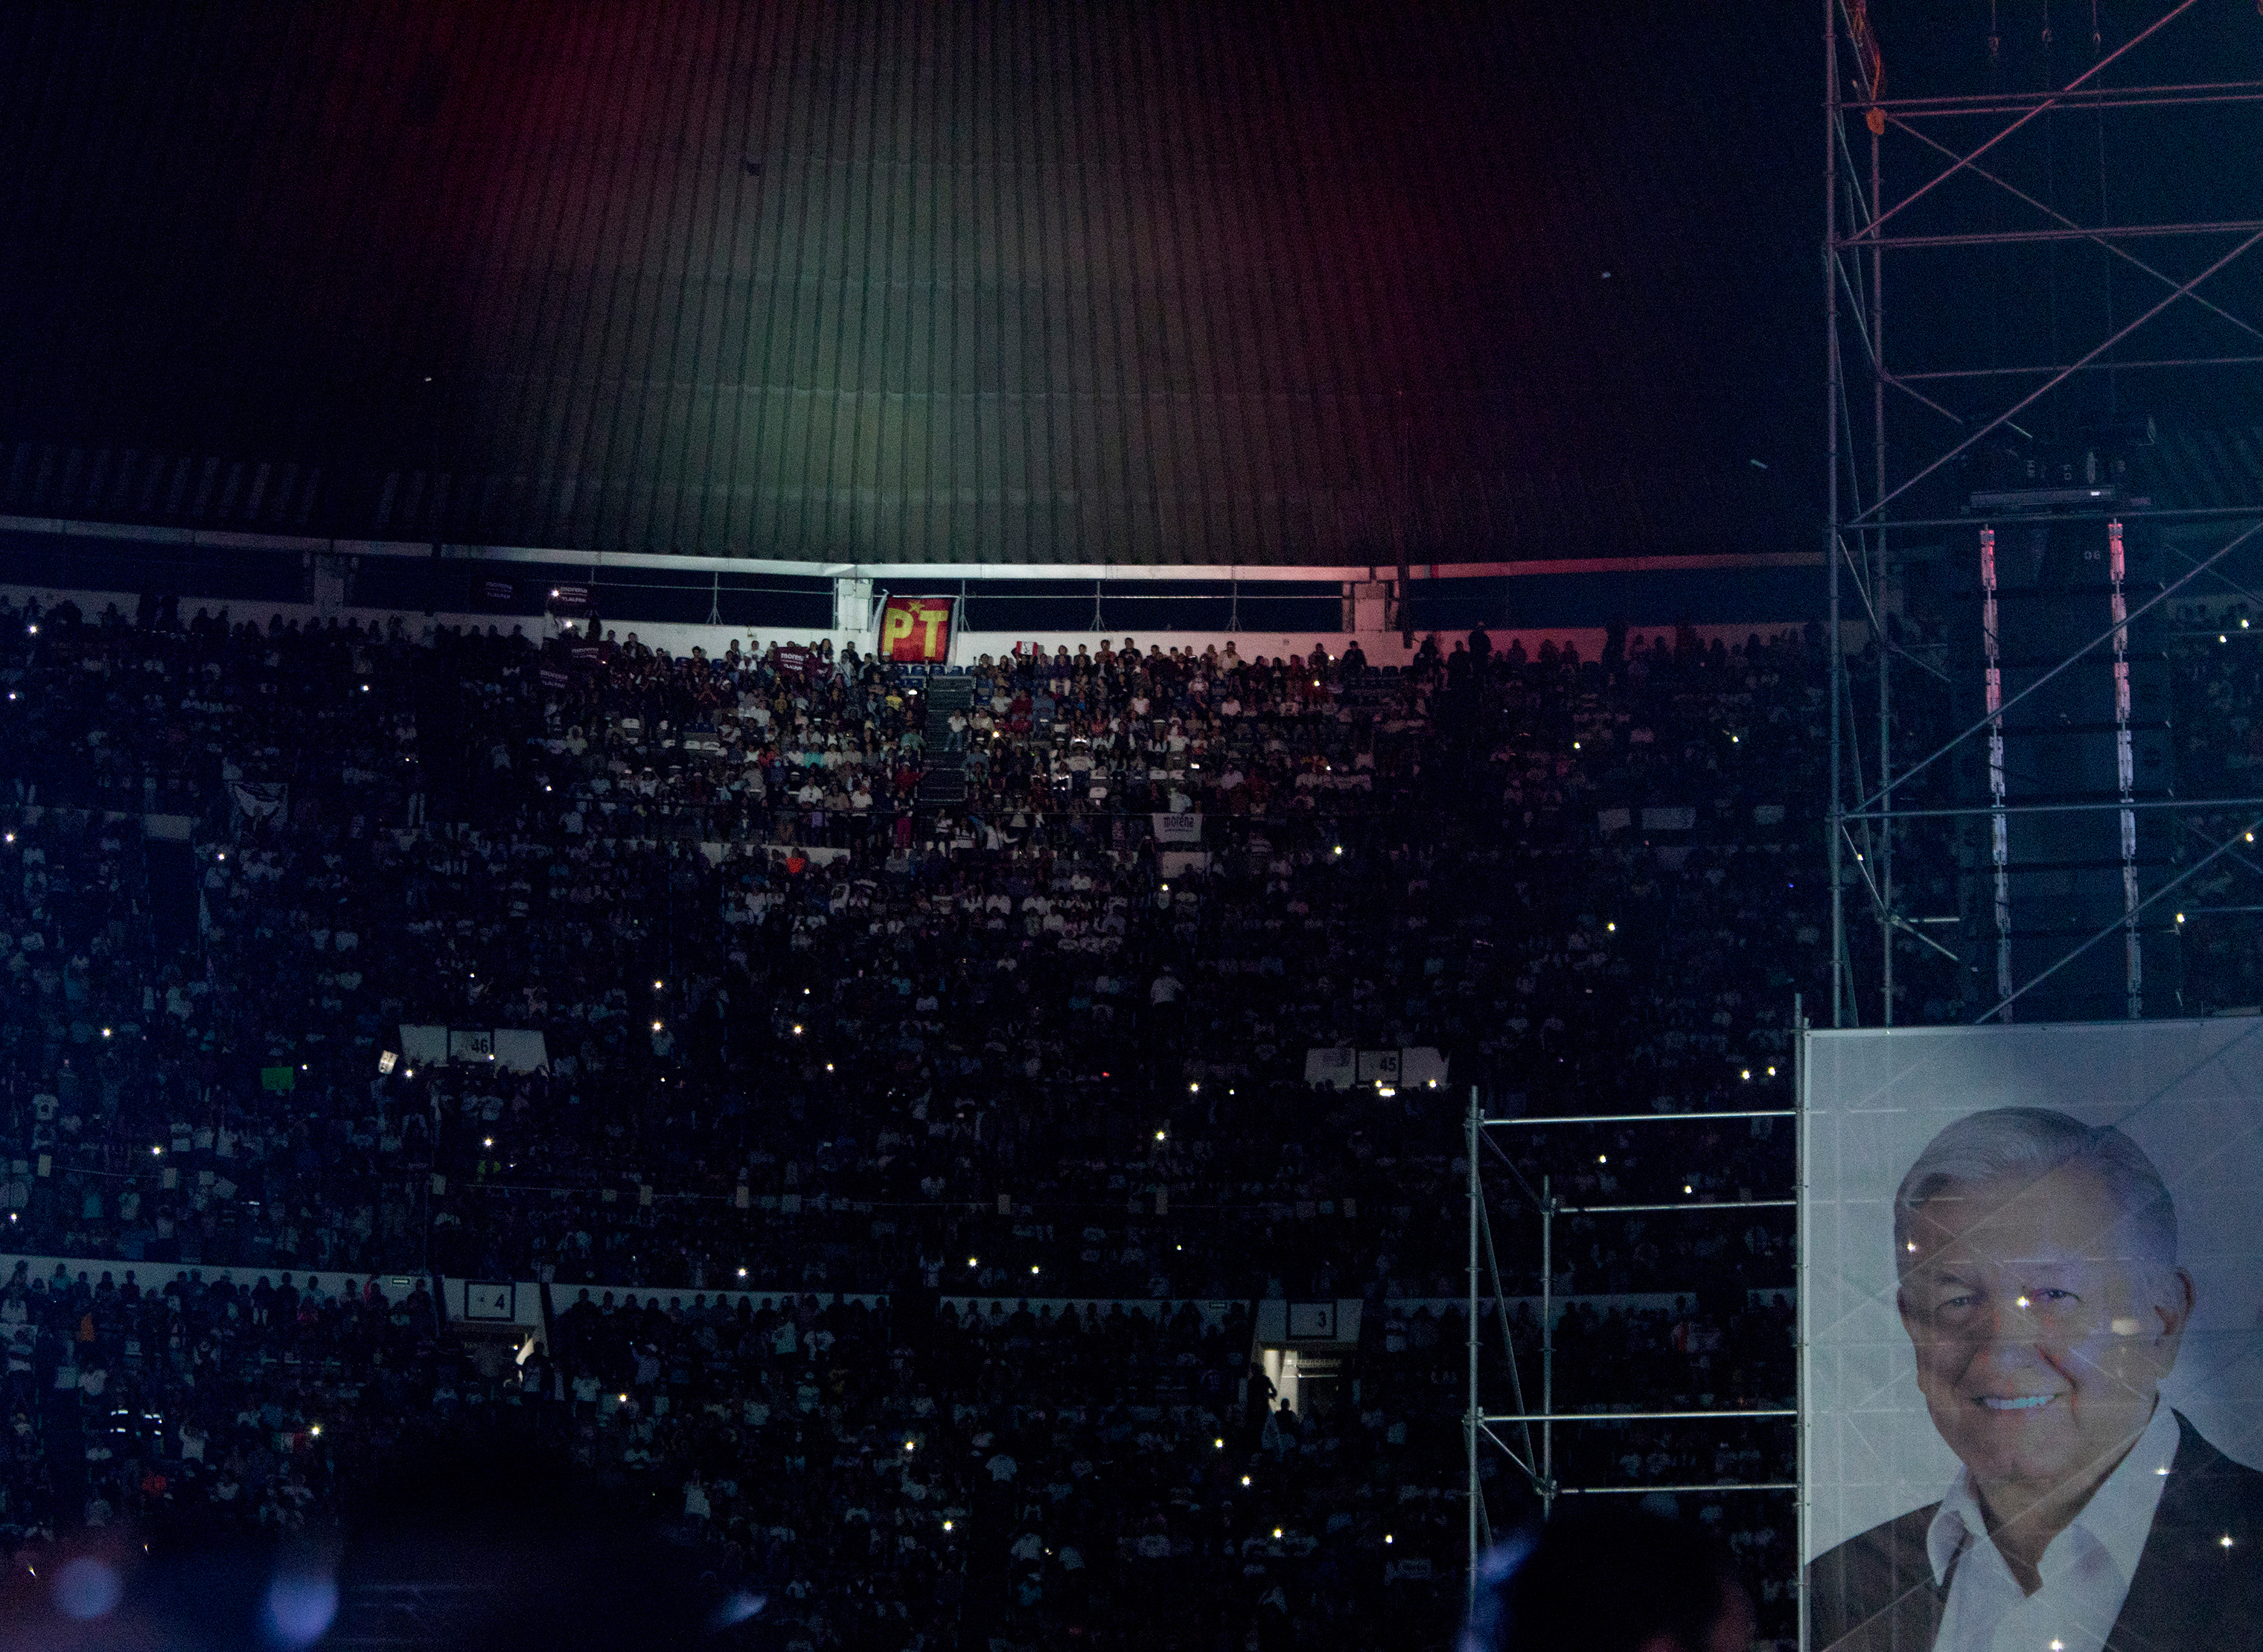 López Obrador's final campaign rally at Estadio Azteca in Mexico City on June 27.